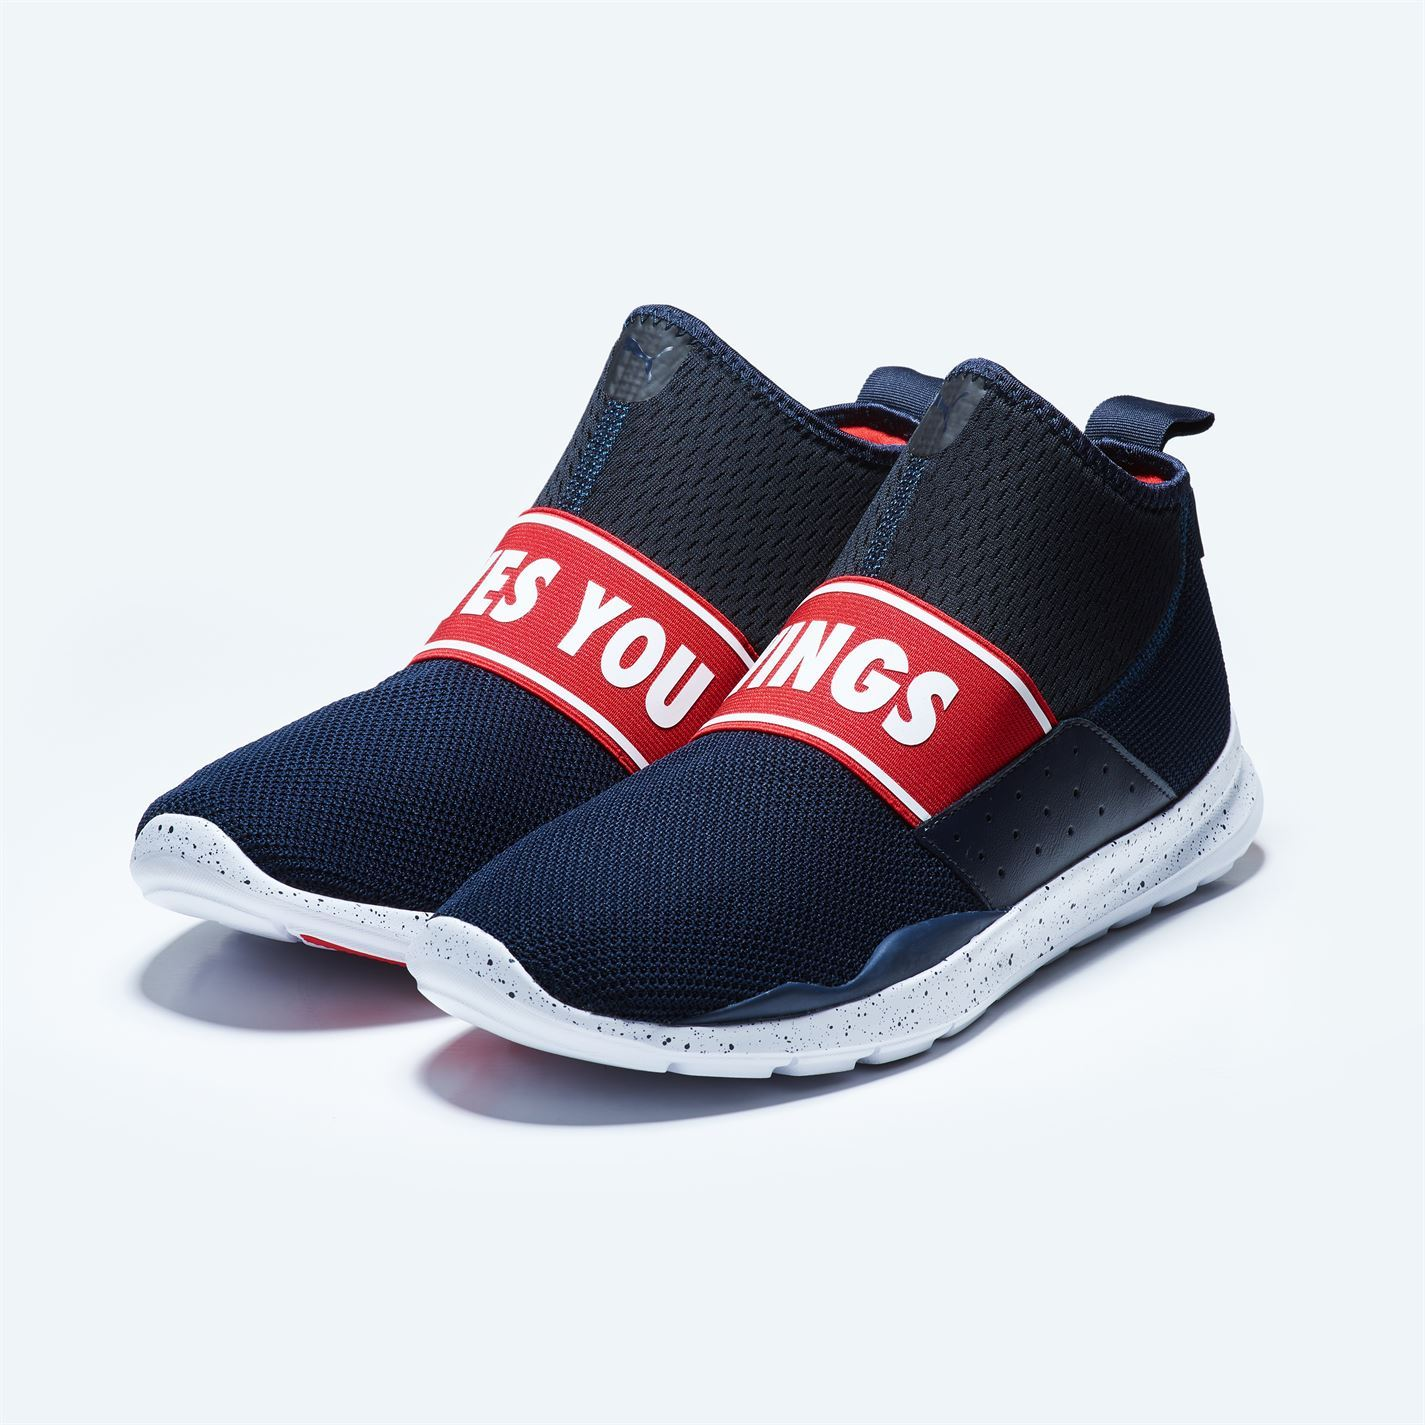 Details about Puma Red Bull Racing F1 Team Evo Trainers Mens Blue Athleisure Shoes Sneakers